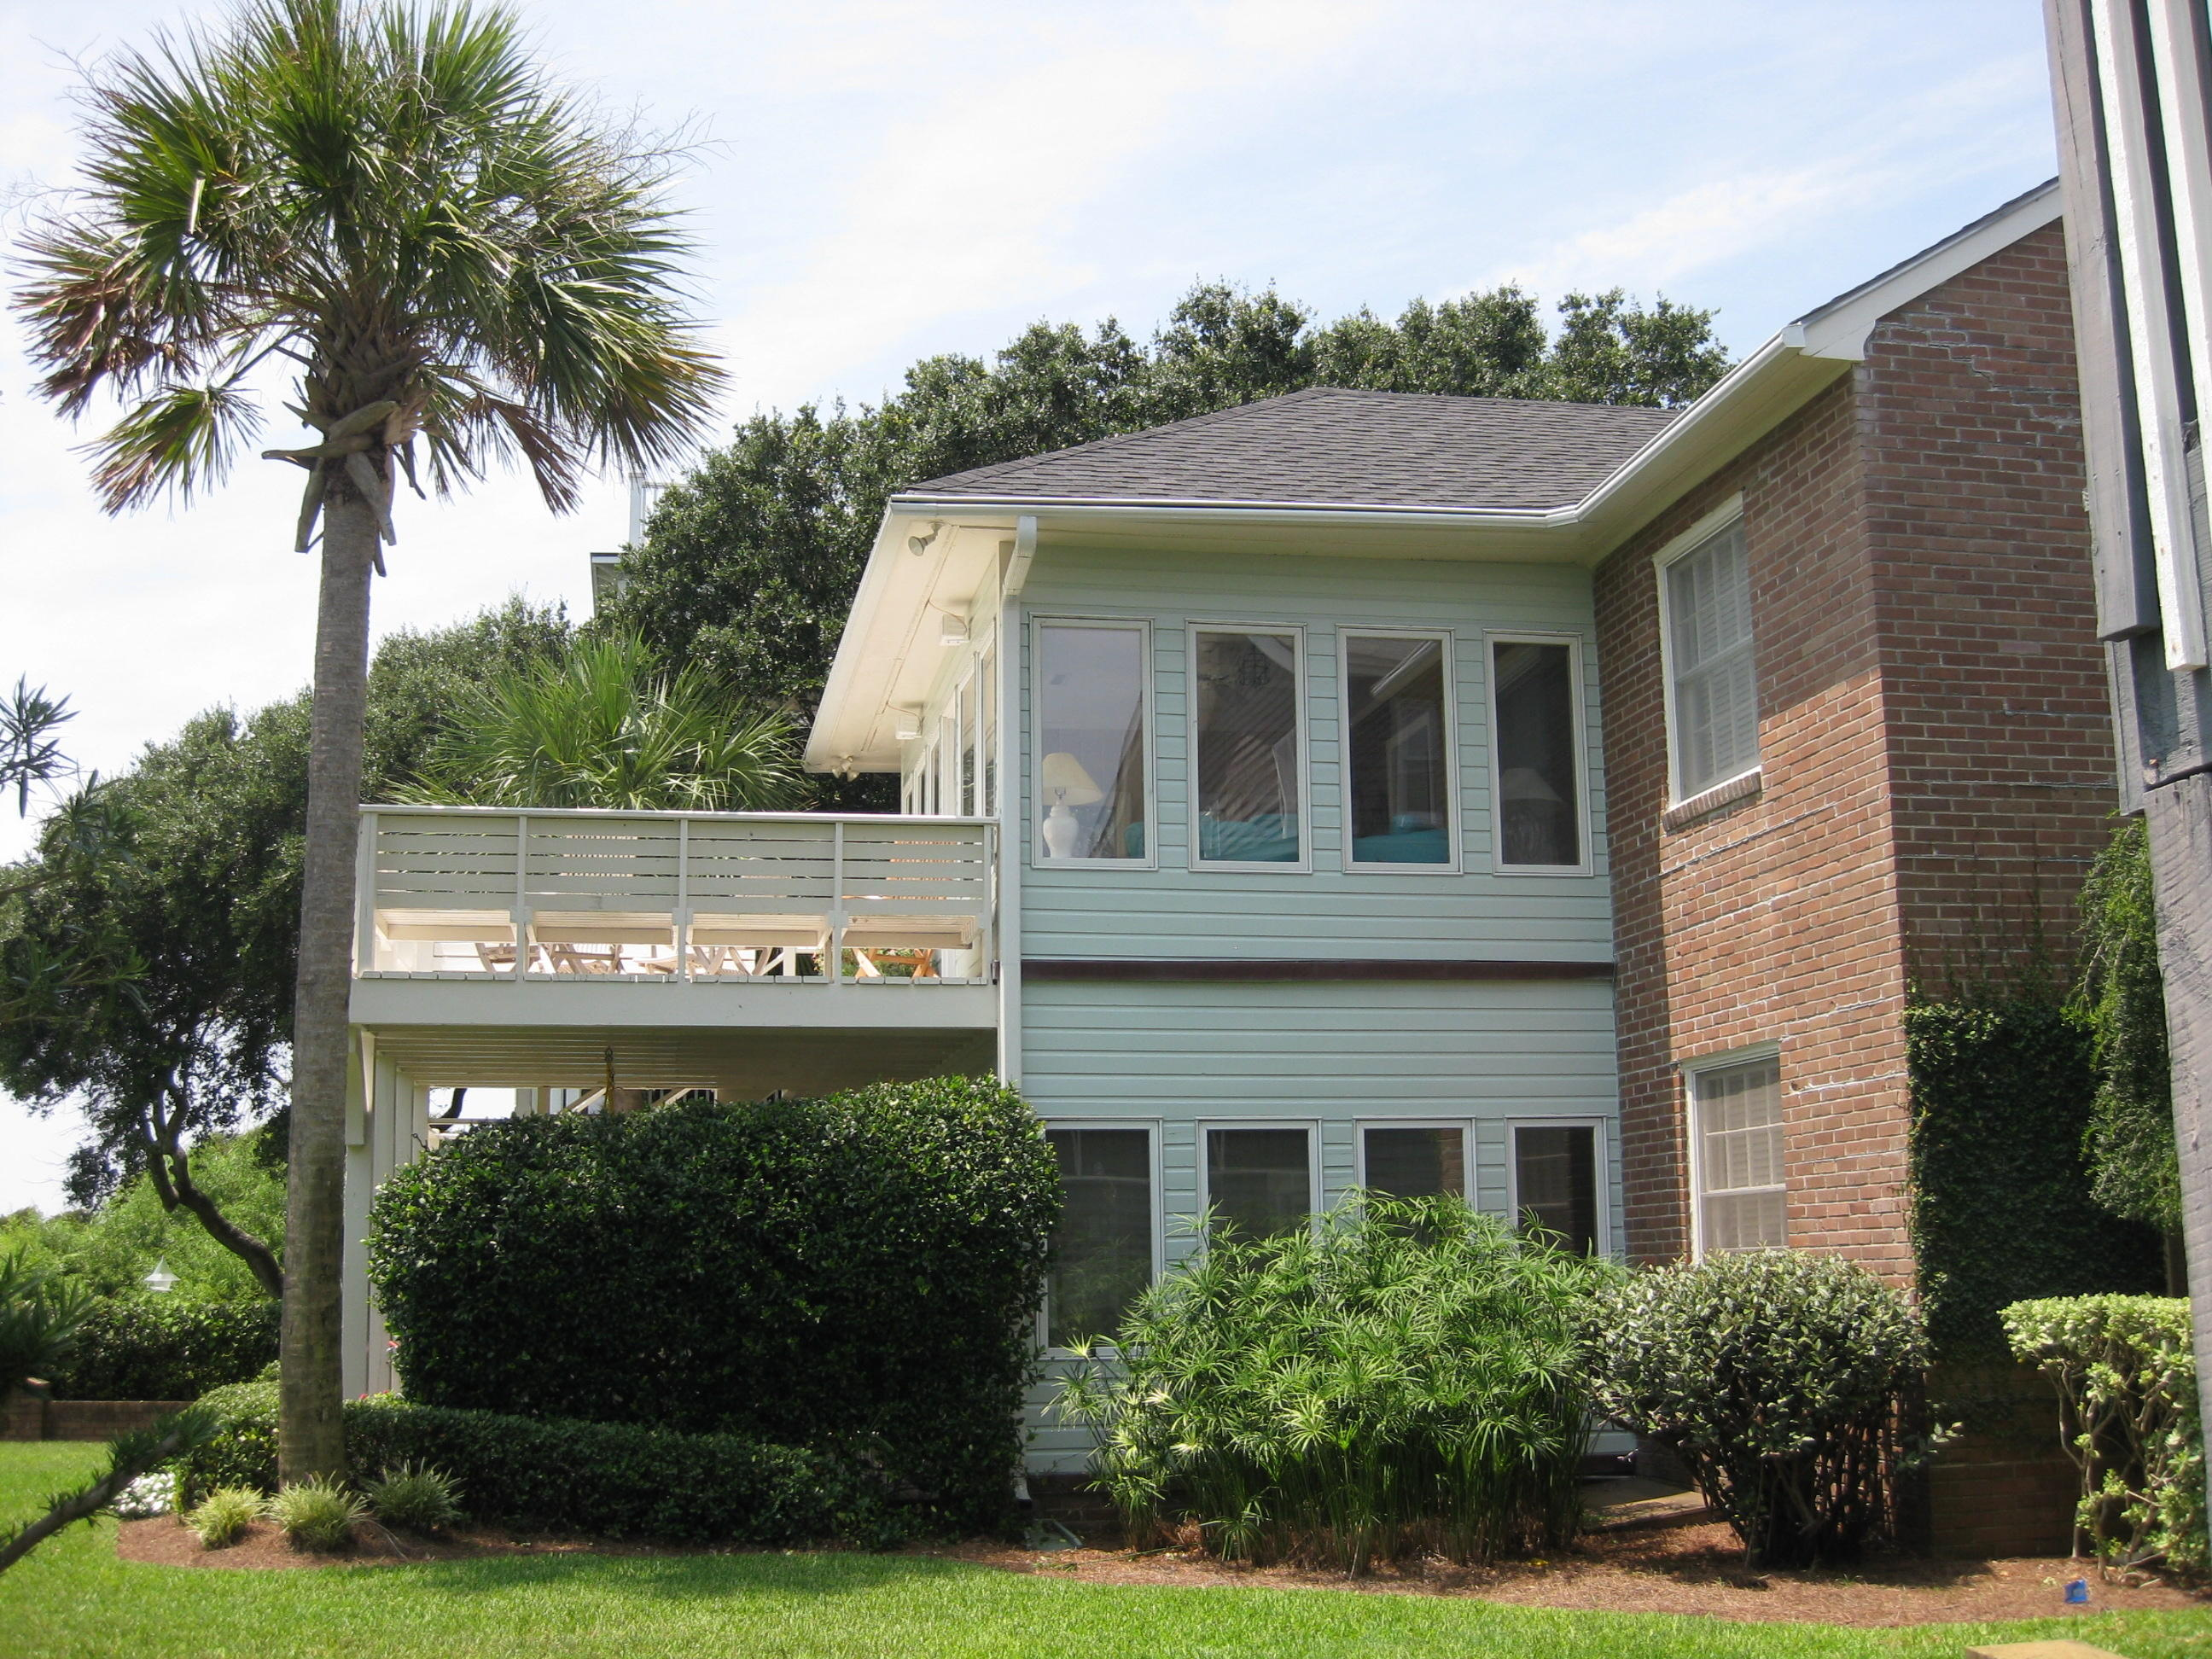 Isle of Palms Homes For Sale - 2910 Palm, Isle of Palms, SC - 26